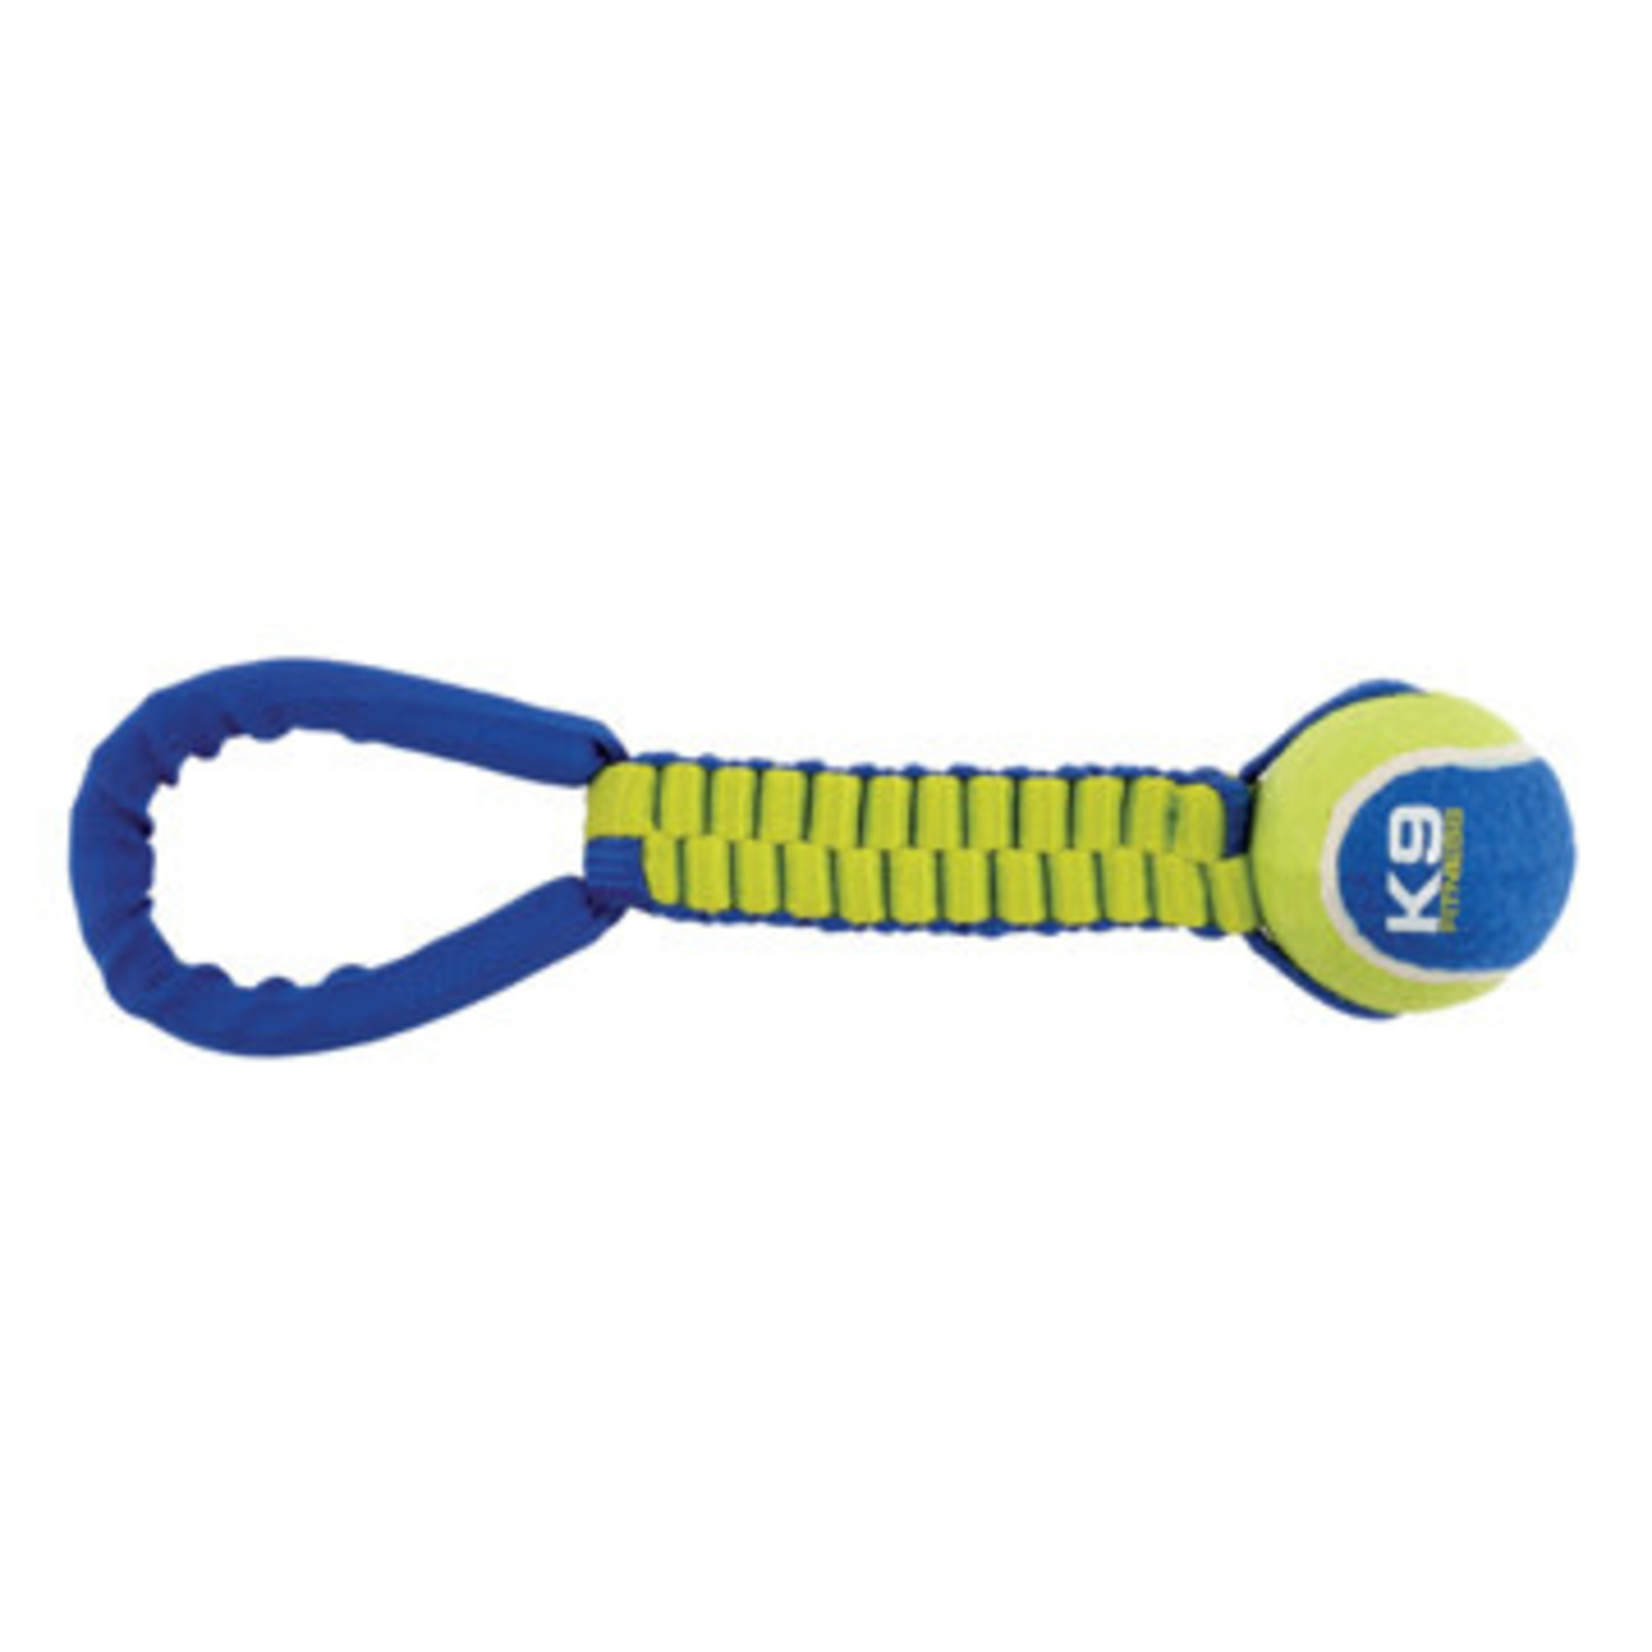 Zeus K9 Fitness Dog Tug Toy Twisted Rope + Tennis Ball